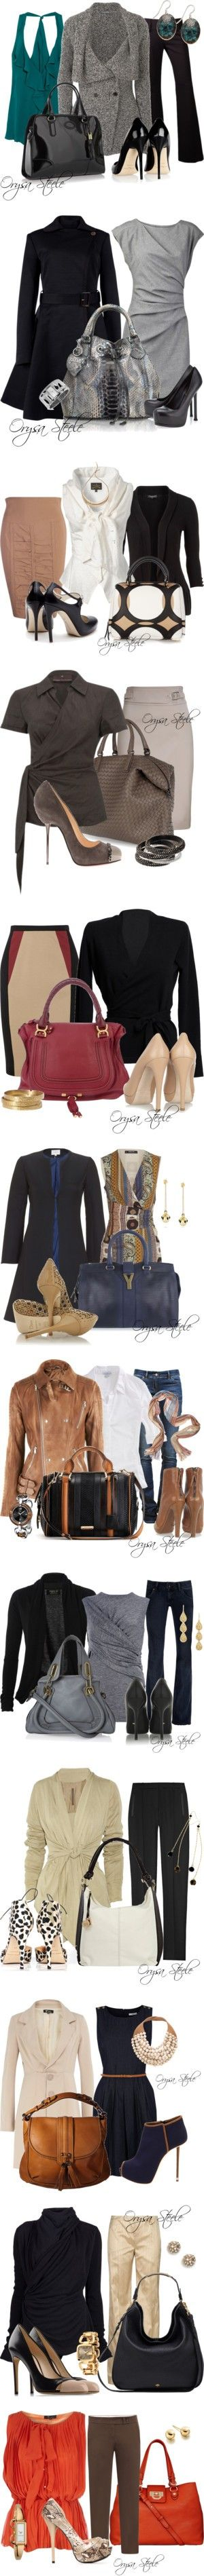 in style @ work - Click image to find more Women's Fashion Pinterest pins: